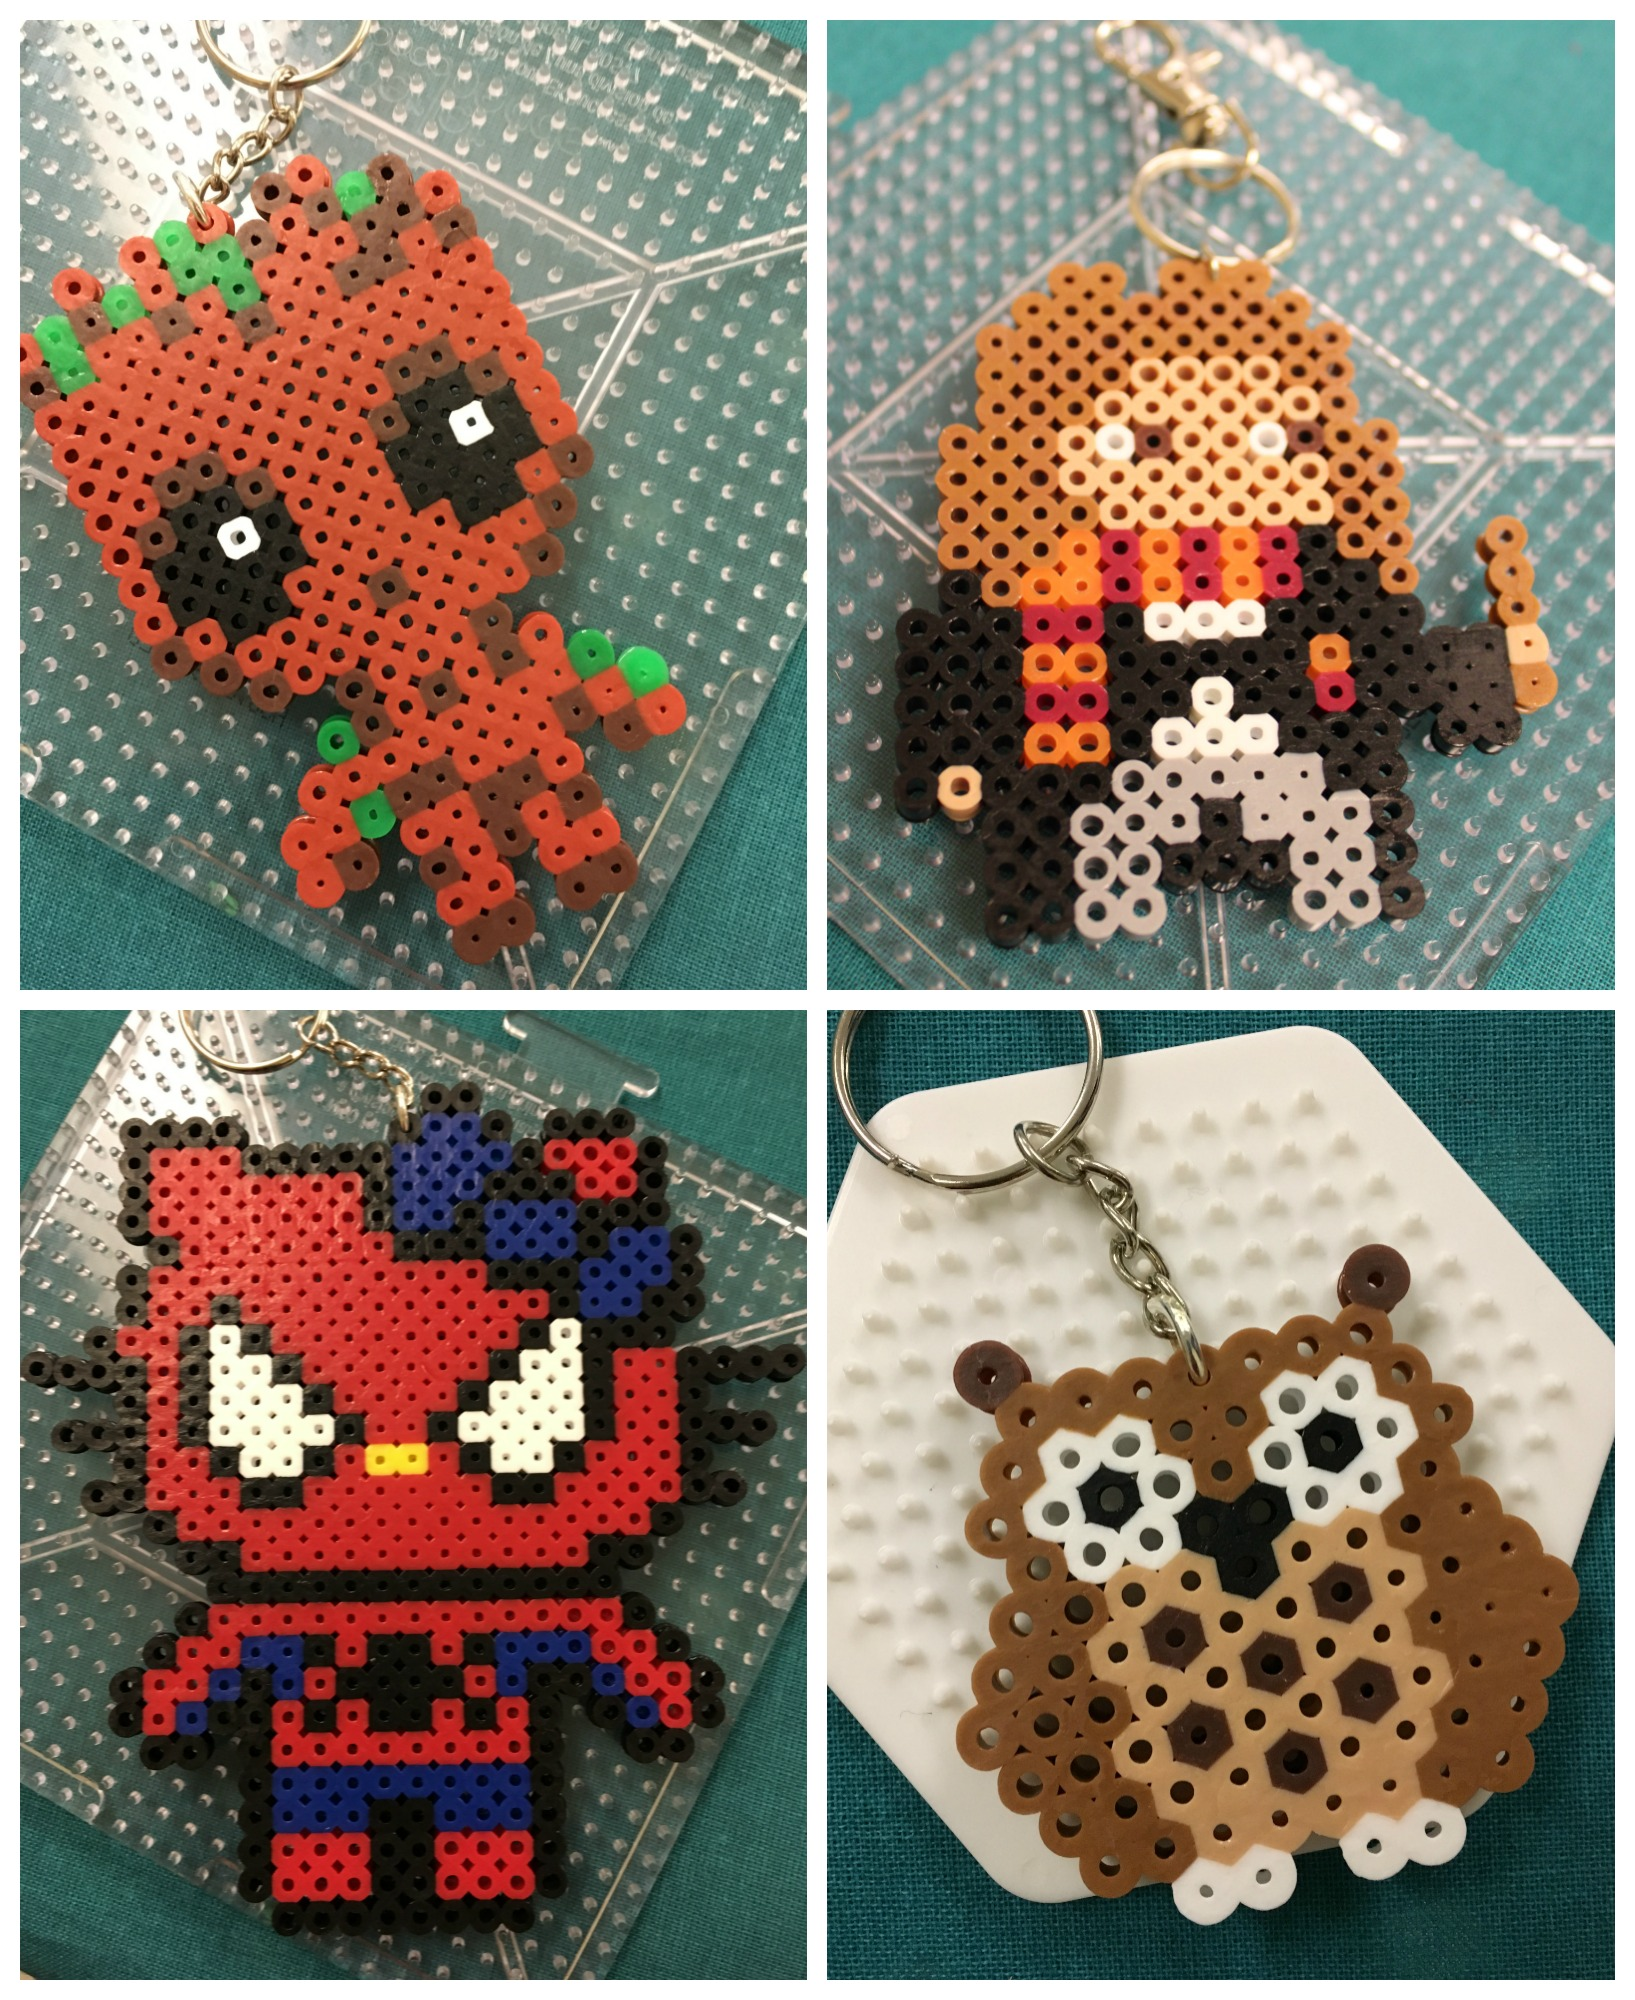 Baby Groot key chain, Hermoine key chain, owl key chain, and Hello Kitty-Spider-Man key chain